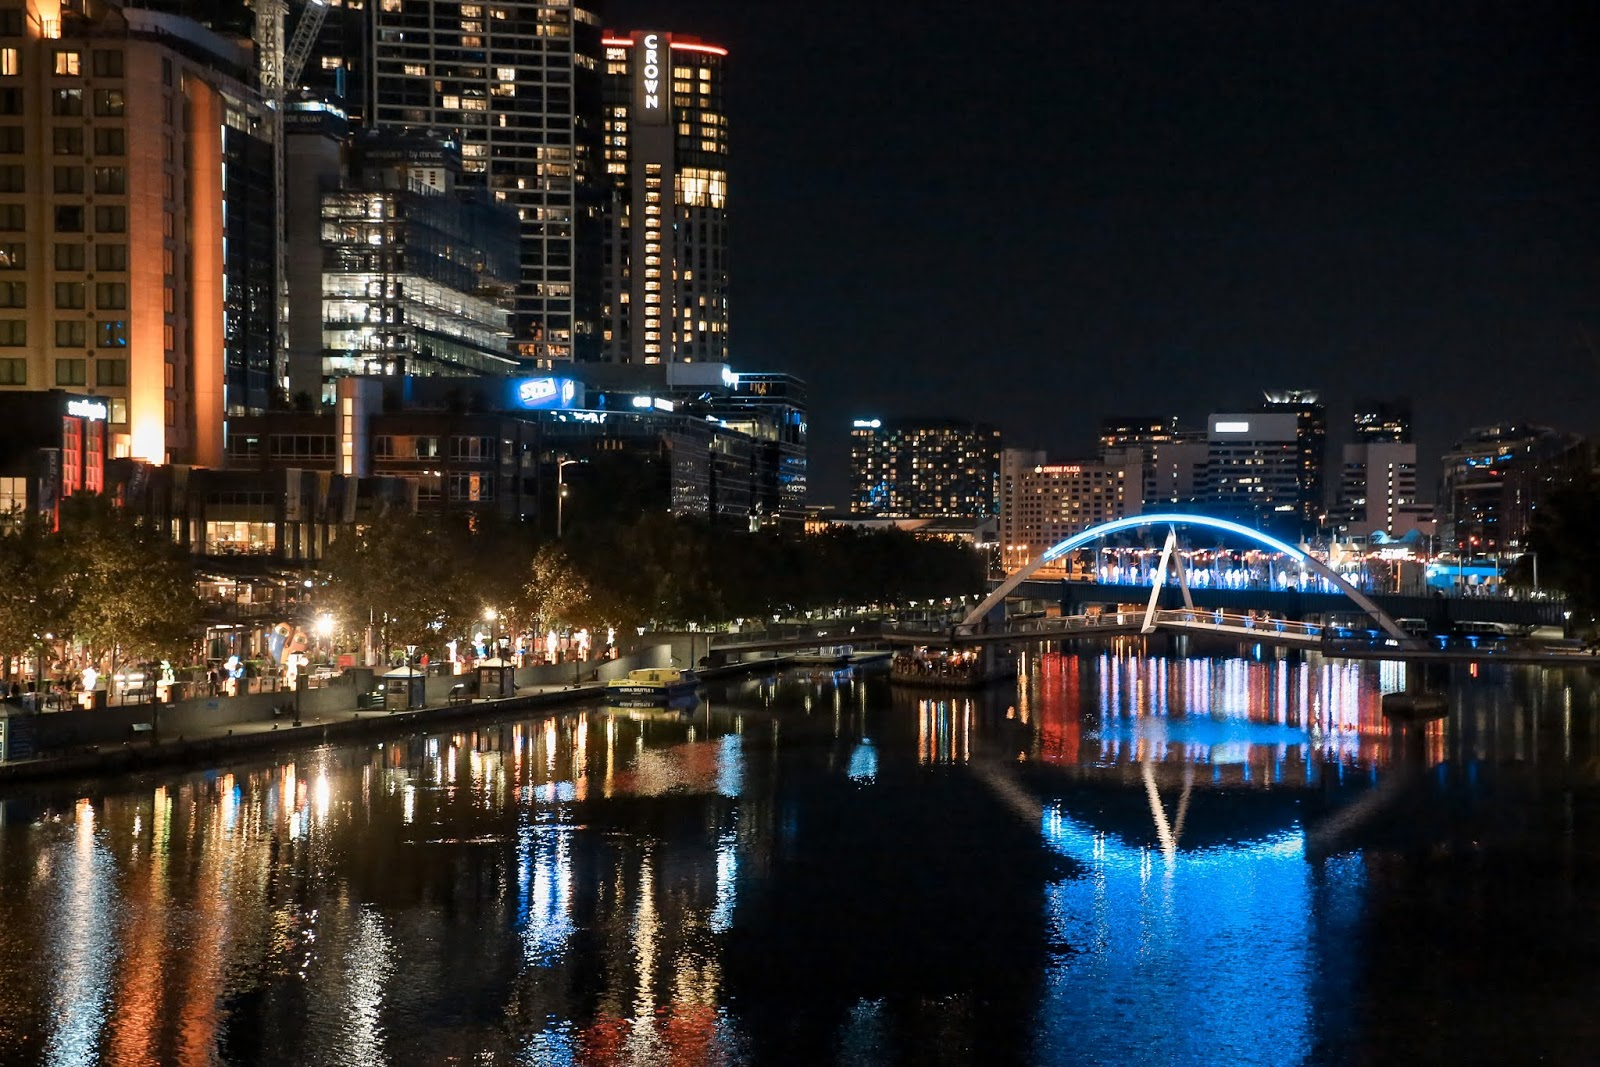 Night Skyline of Melbourne from Yarra River